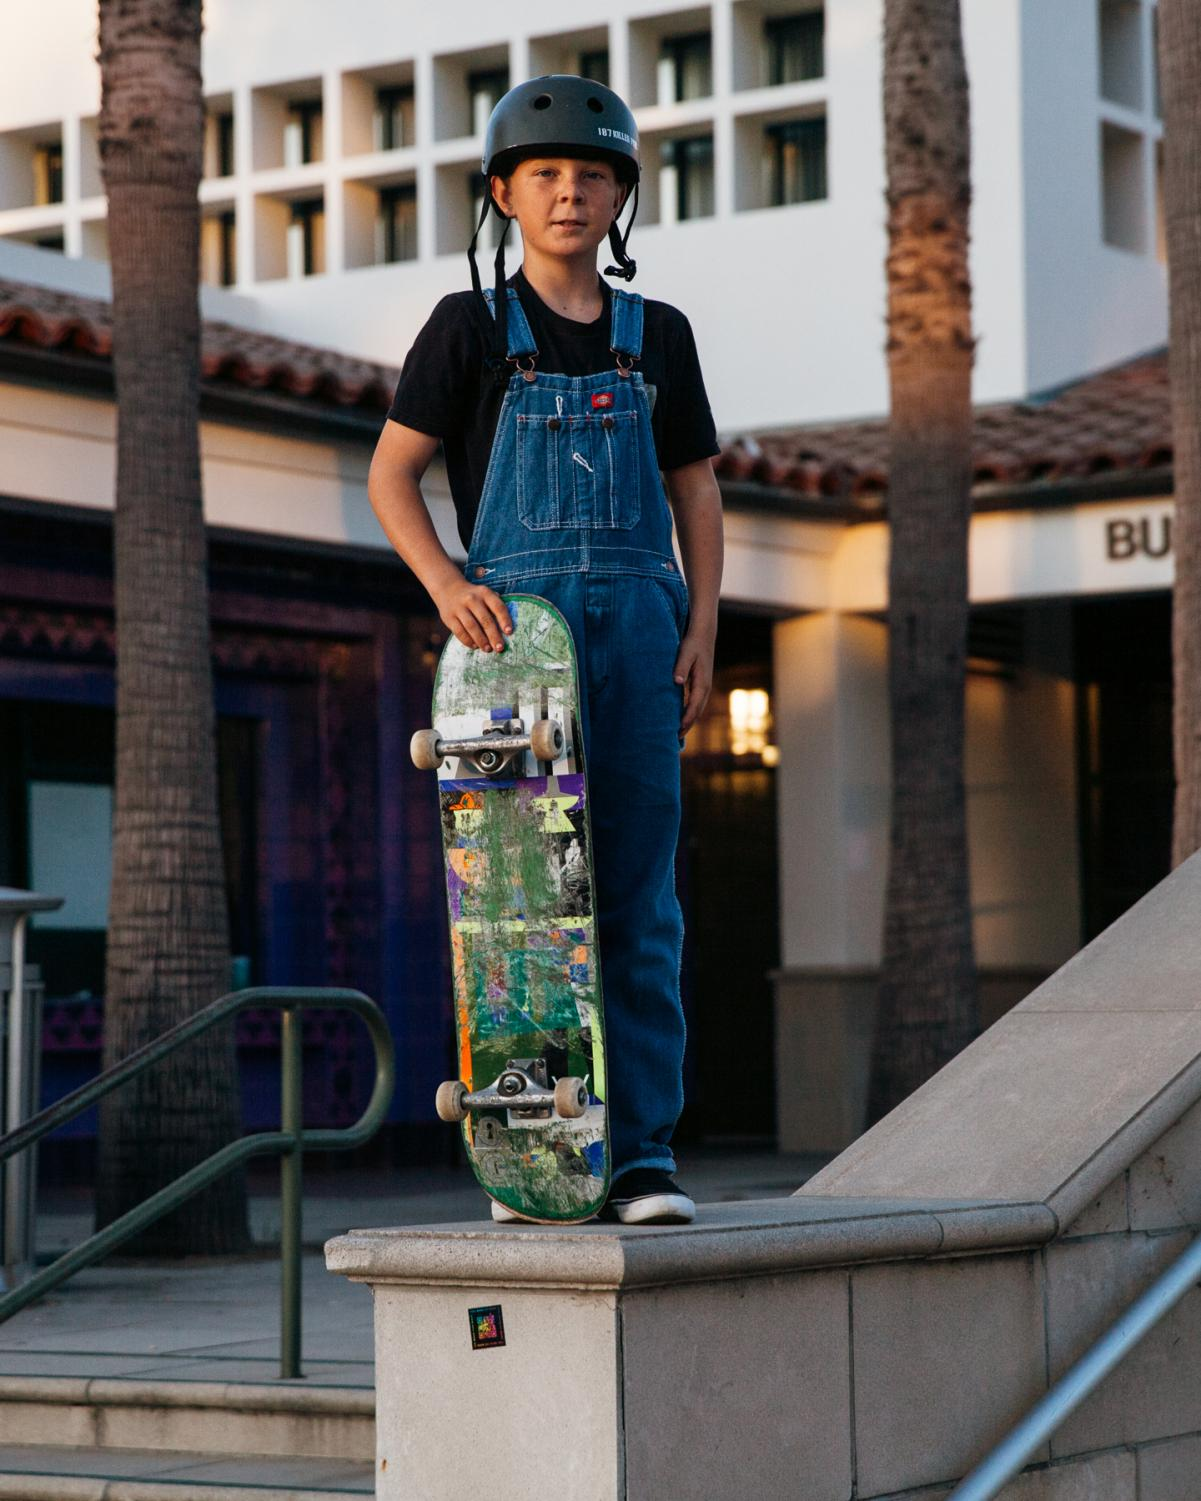 Santa Barbara Junior High School student Jack Charrette stands on a five stair cheek-wall cap before attempting to ollie off it on Thursday, Nov. 17, in front of the Business Communications Center. Charrette, 12-years-old, likes to skate the CC with his friends after school.